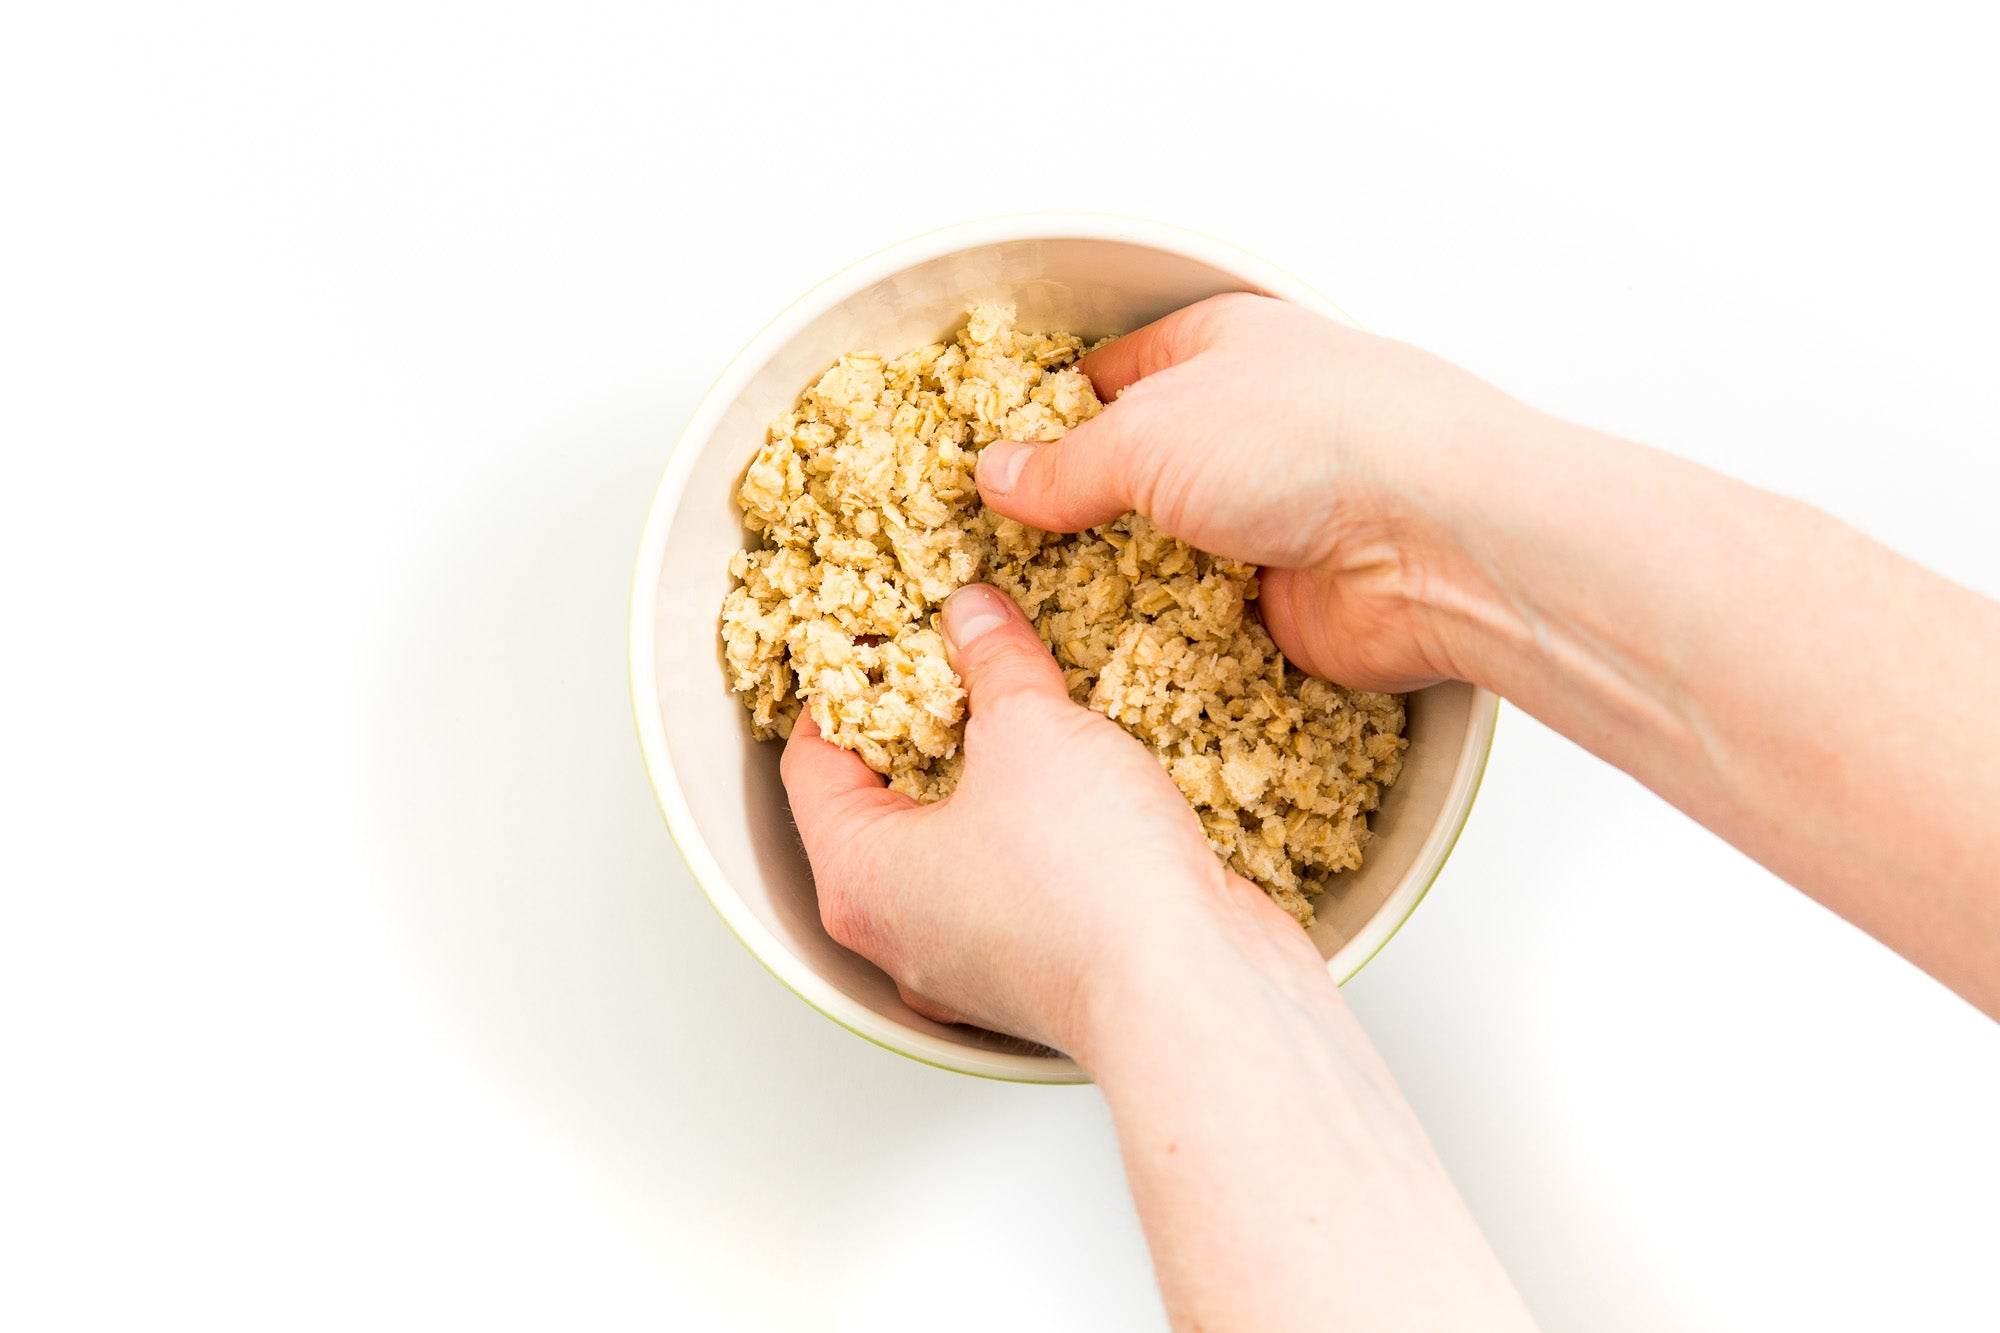 Image from above of hands mixing dough in a bowl for Miss Jones Baking Co Mini Berry Crumbles recipe